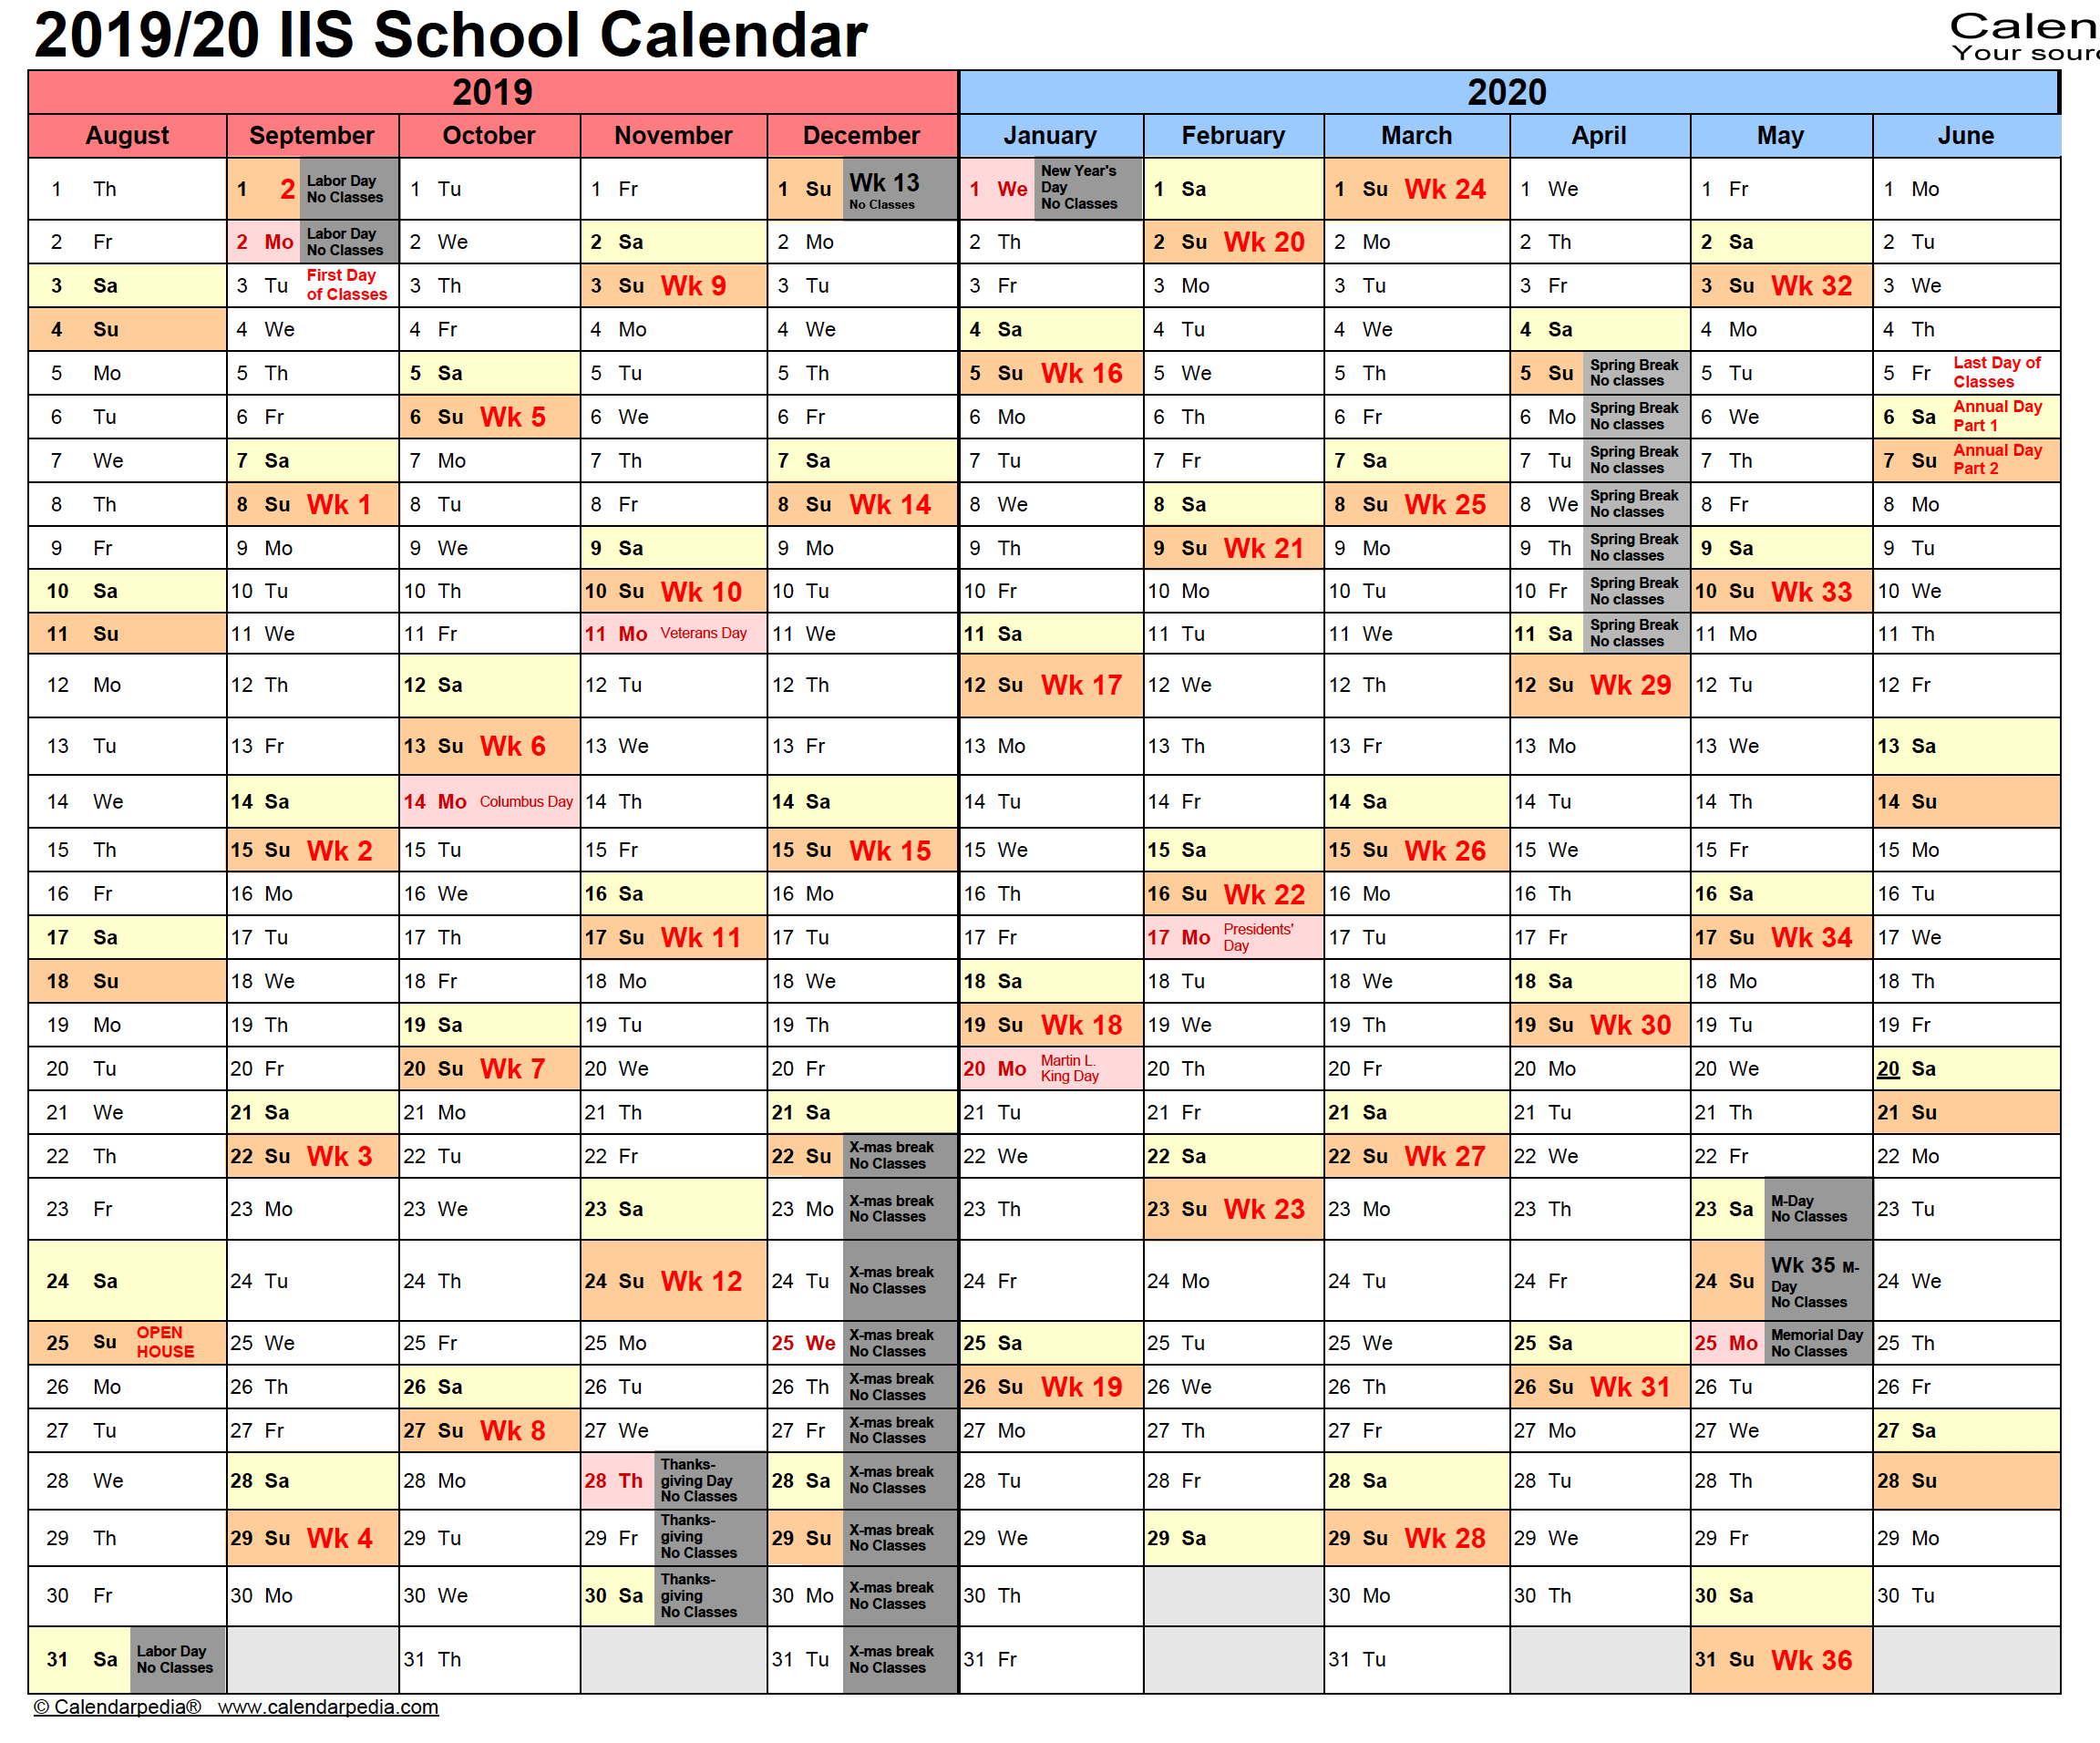 Visual School Calendar for 2019-2020